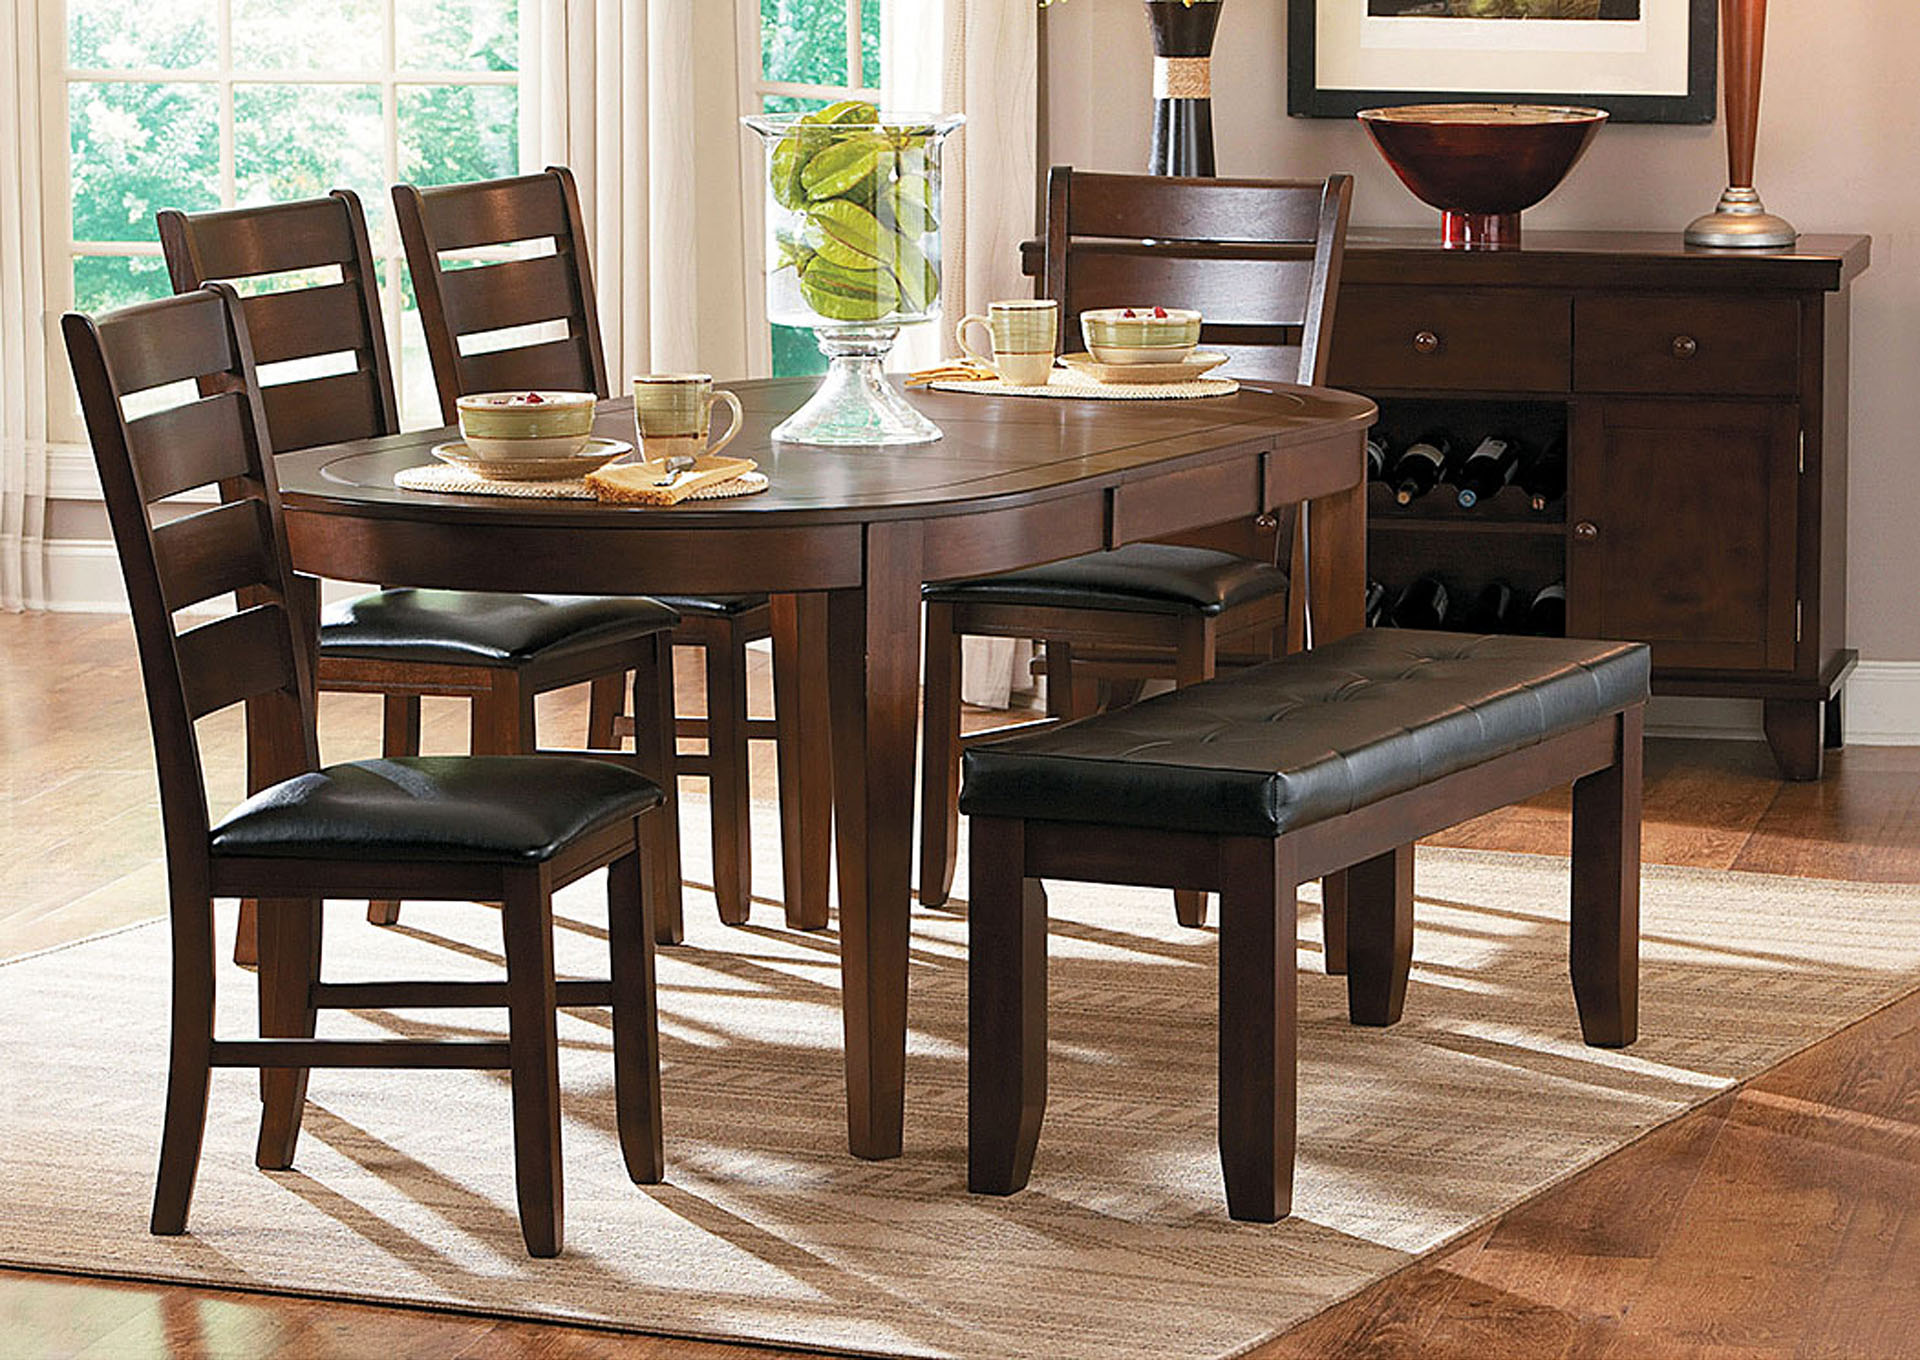 ACO Furniture Ameillia Oval Dining Table W Side Chairs - Oval dining table for 4